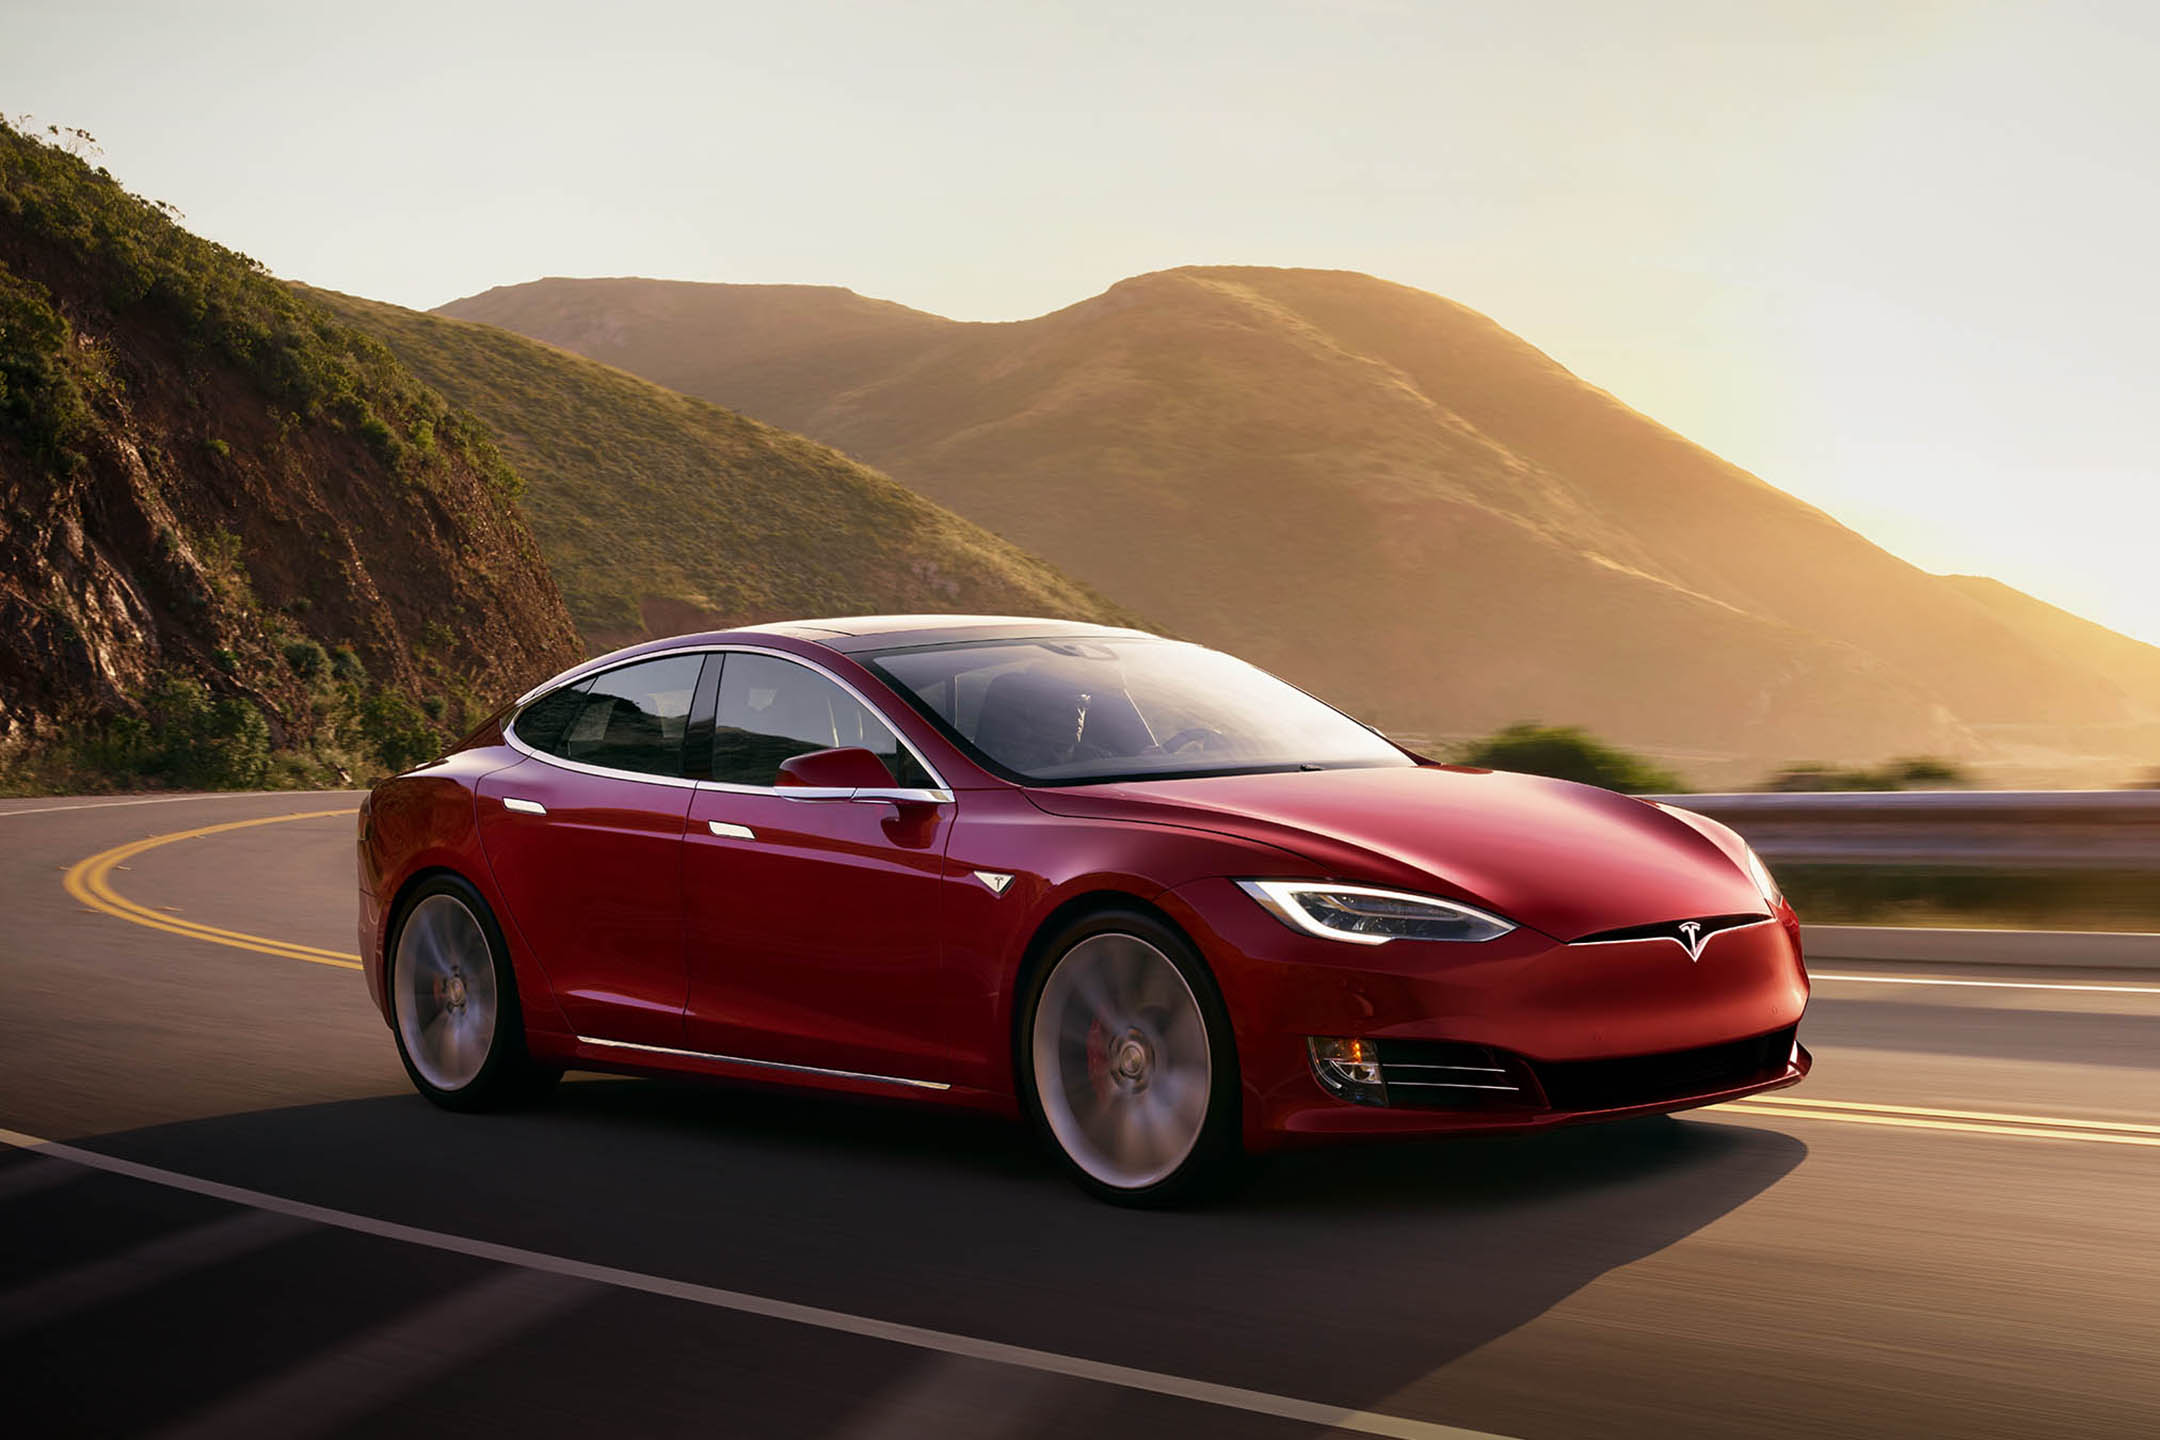 The Week in Tesla News: Model S to Put a Ring on It, Tesla Truck Teased, Tesla Car Insurance